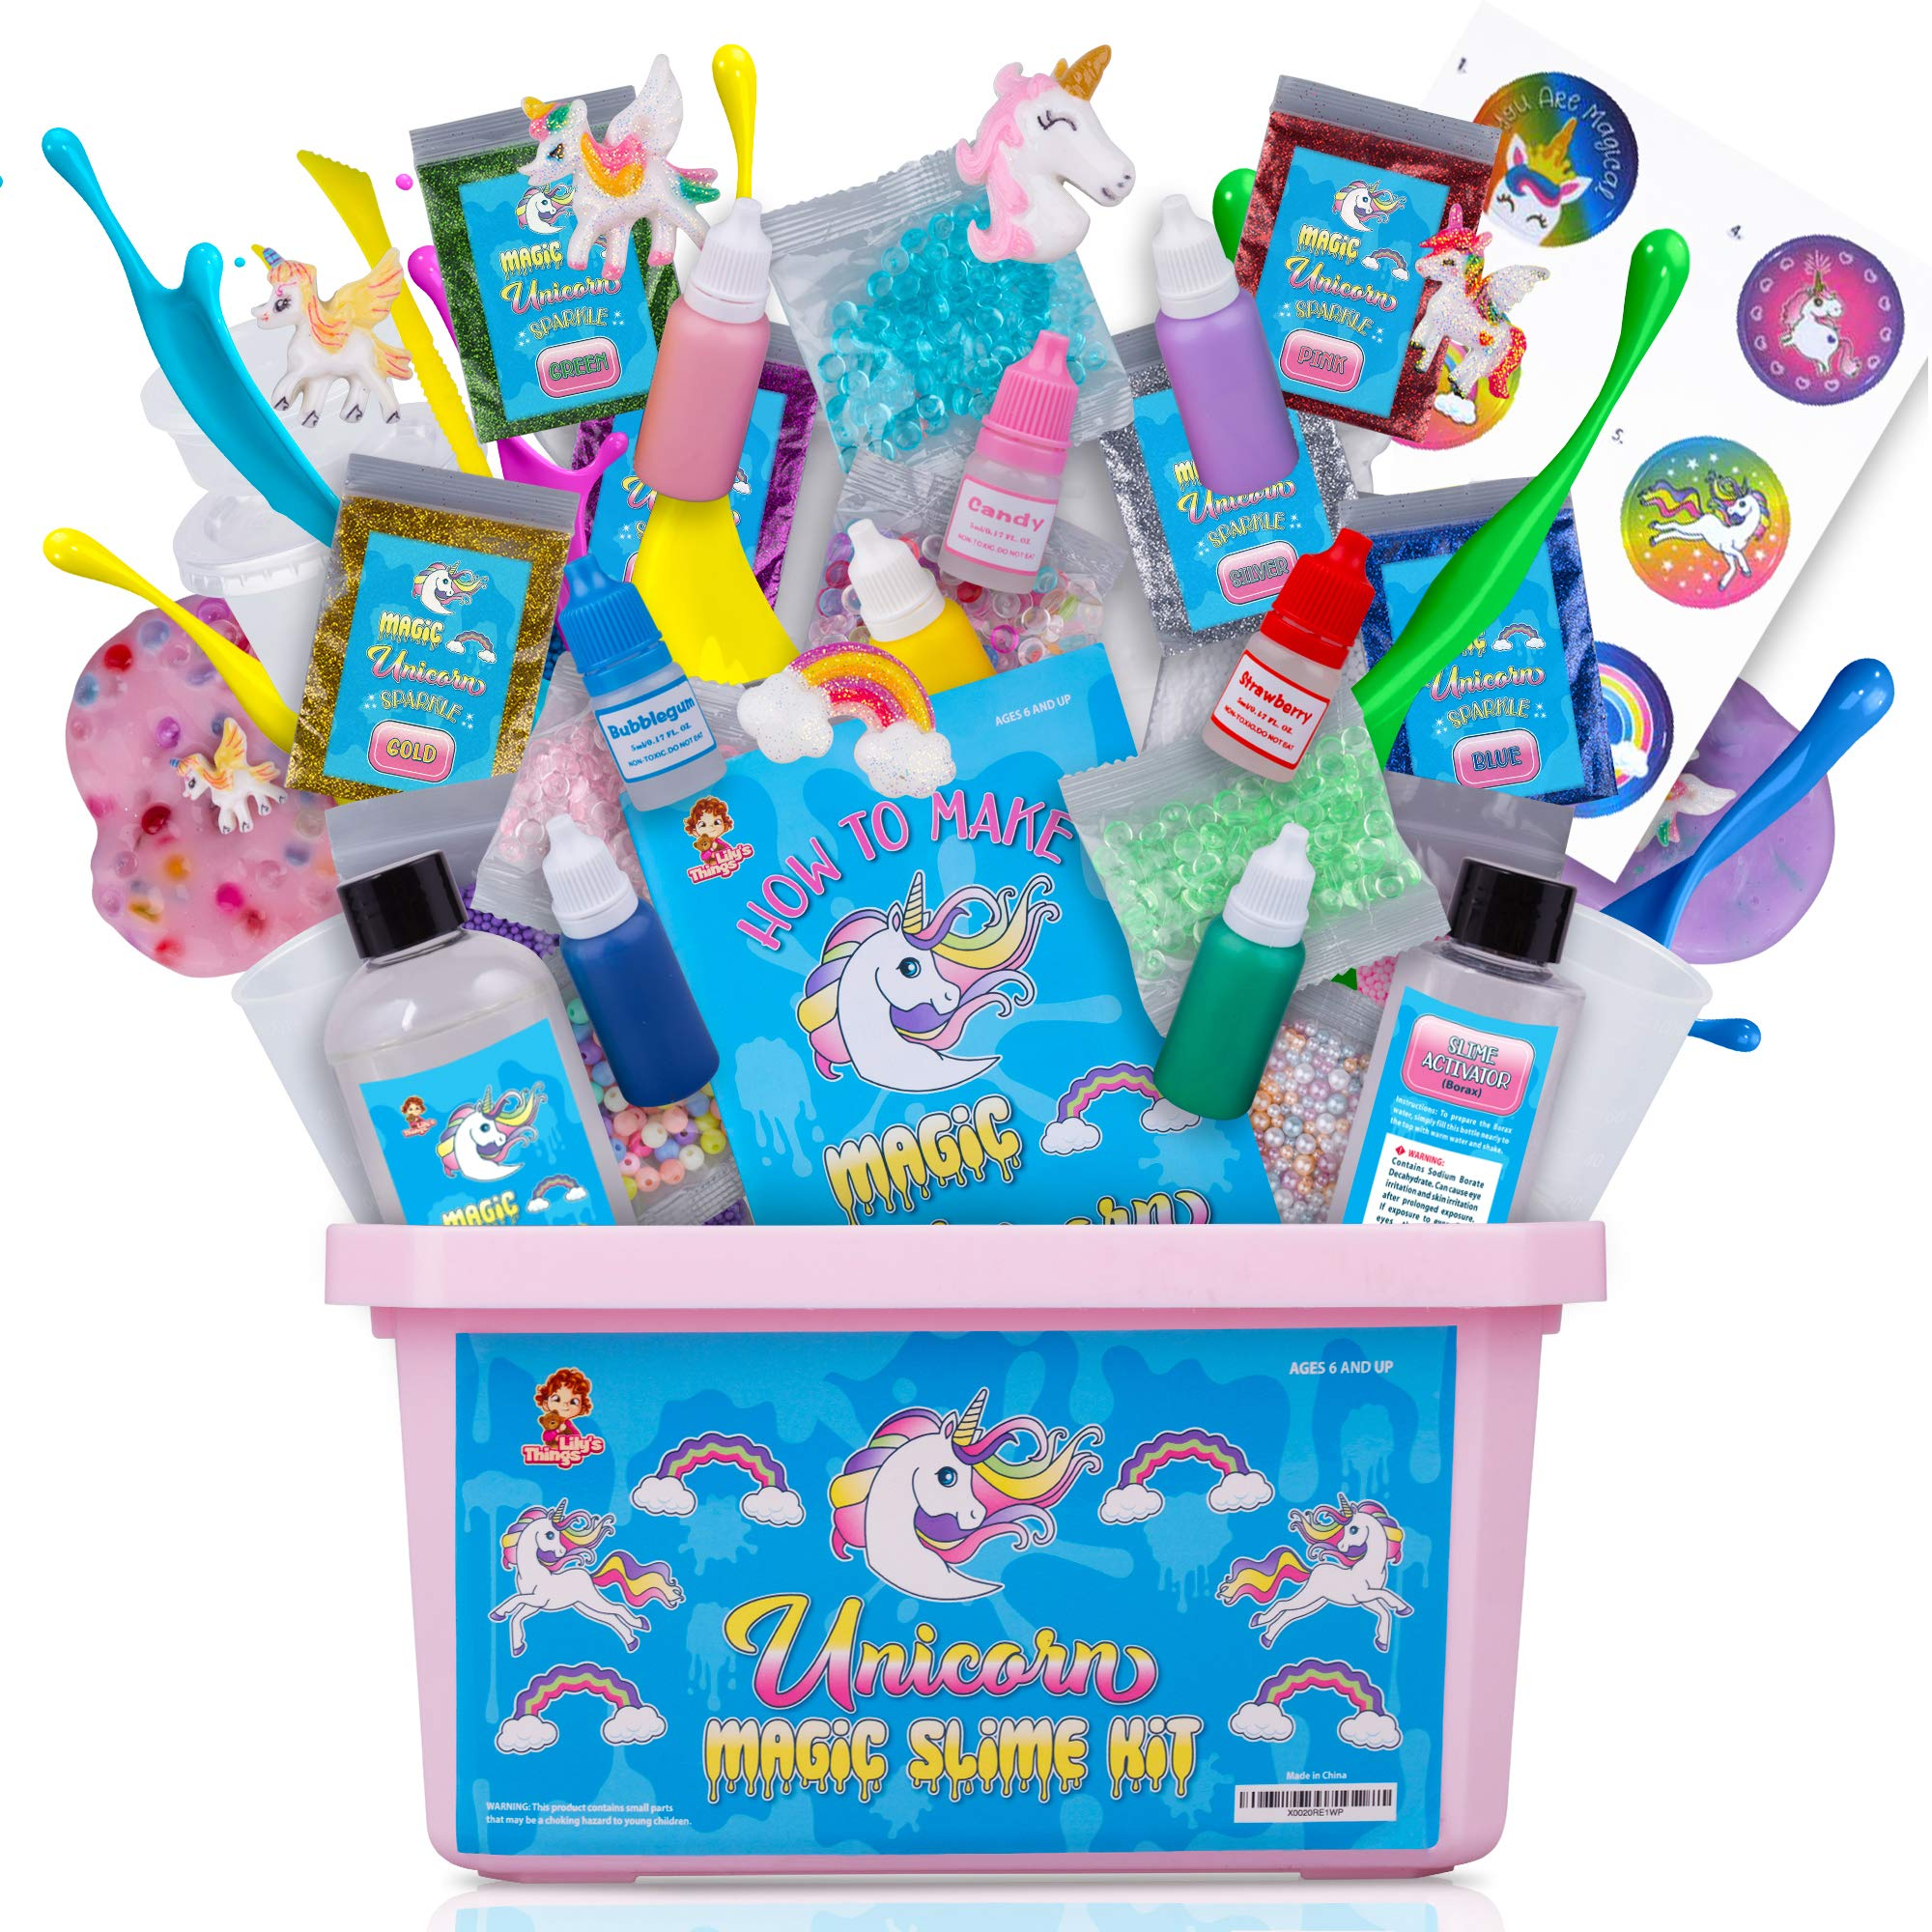 Unicorn Slime Kit for Girls - Slime Kits with Everything in One Box - Unicorn Poop Slime Kit with Unicorn Charms - Unicorn Toys for Girls by Lily's Things